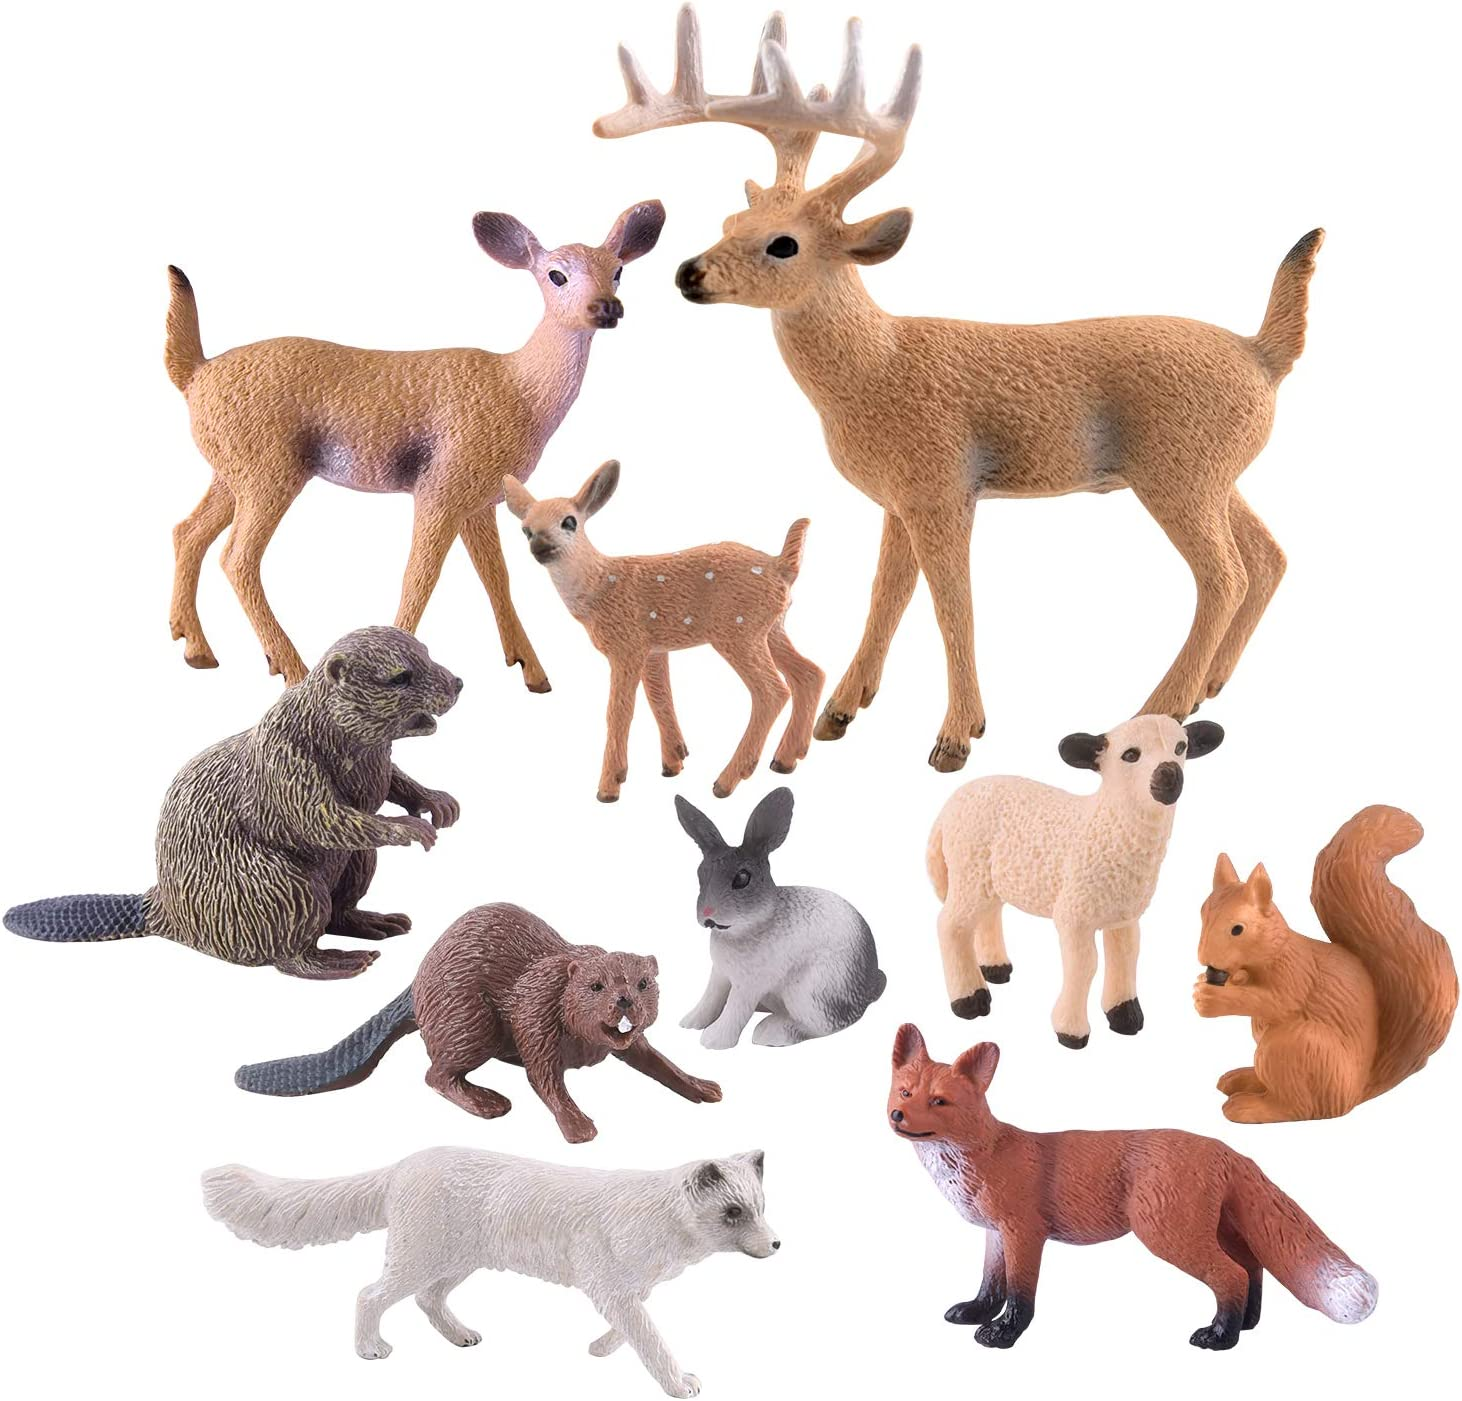 TUPARKA 10 Pcs Forest Animals Figures, Miniature Woodland Creatures Figurines Squirrel, Rabbit, Fox, Sheep, Beaver, Deer Figurines Woodland Cake Topper for Birthday Party, Baby Shower, Christmas Party